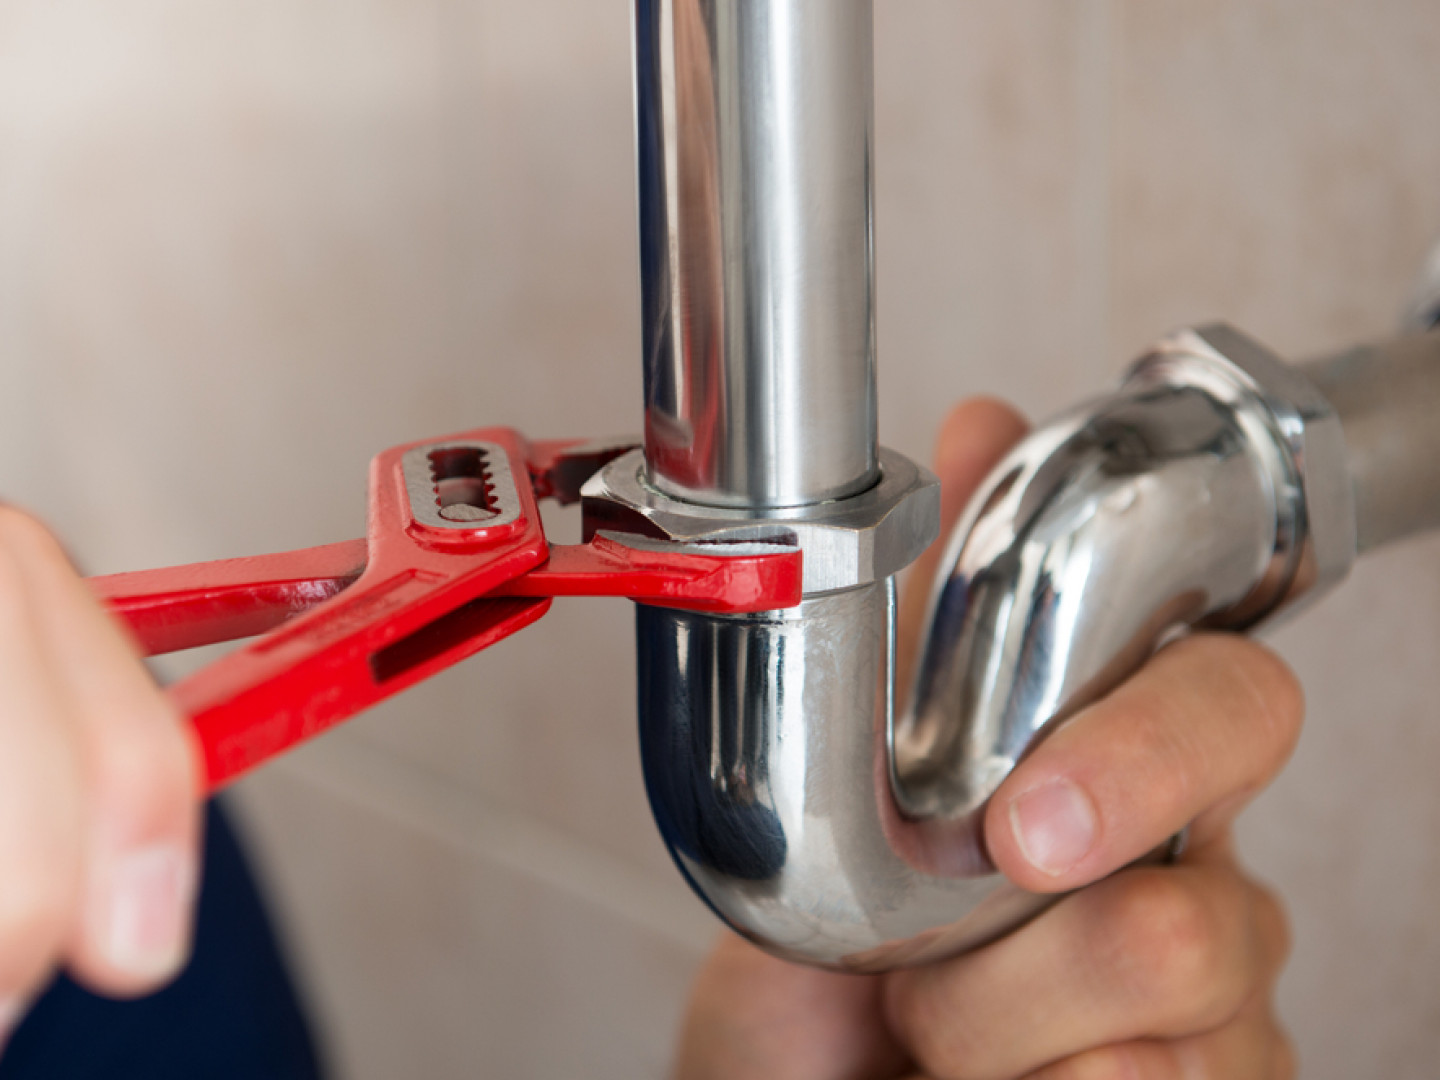 Don't Let Plumbing Problems Get the Best of You